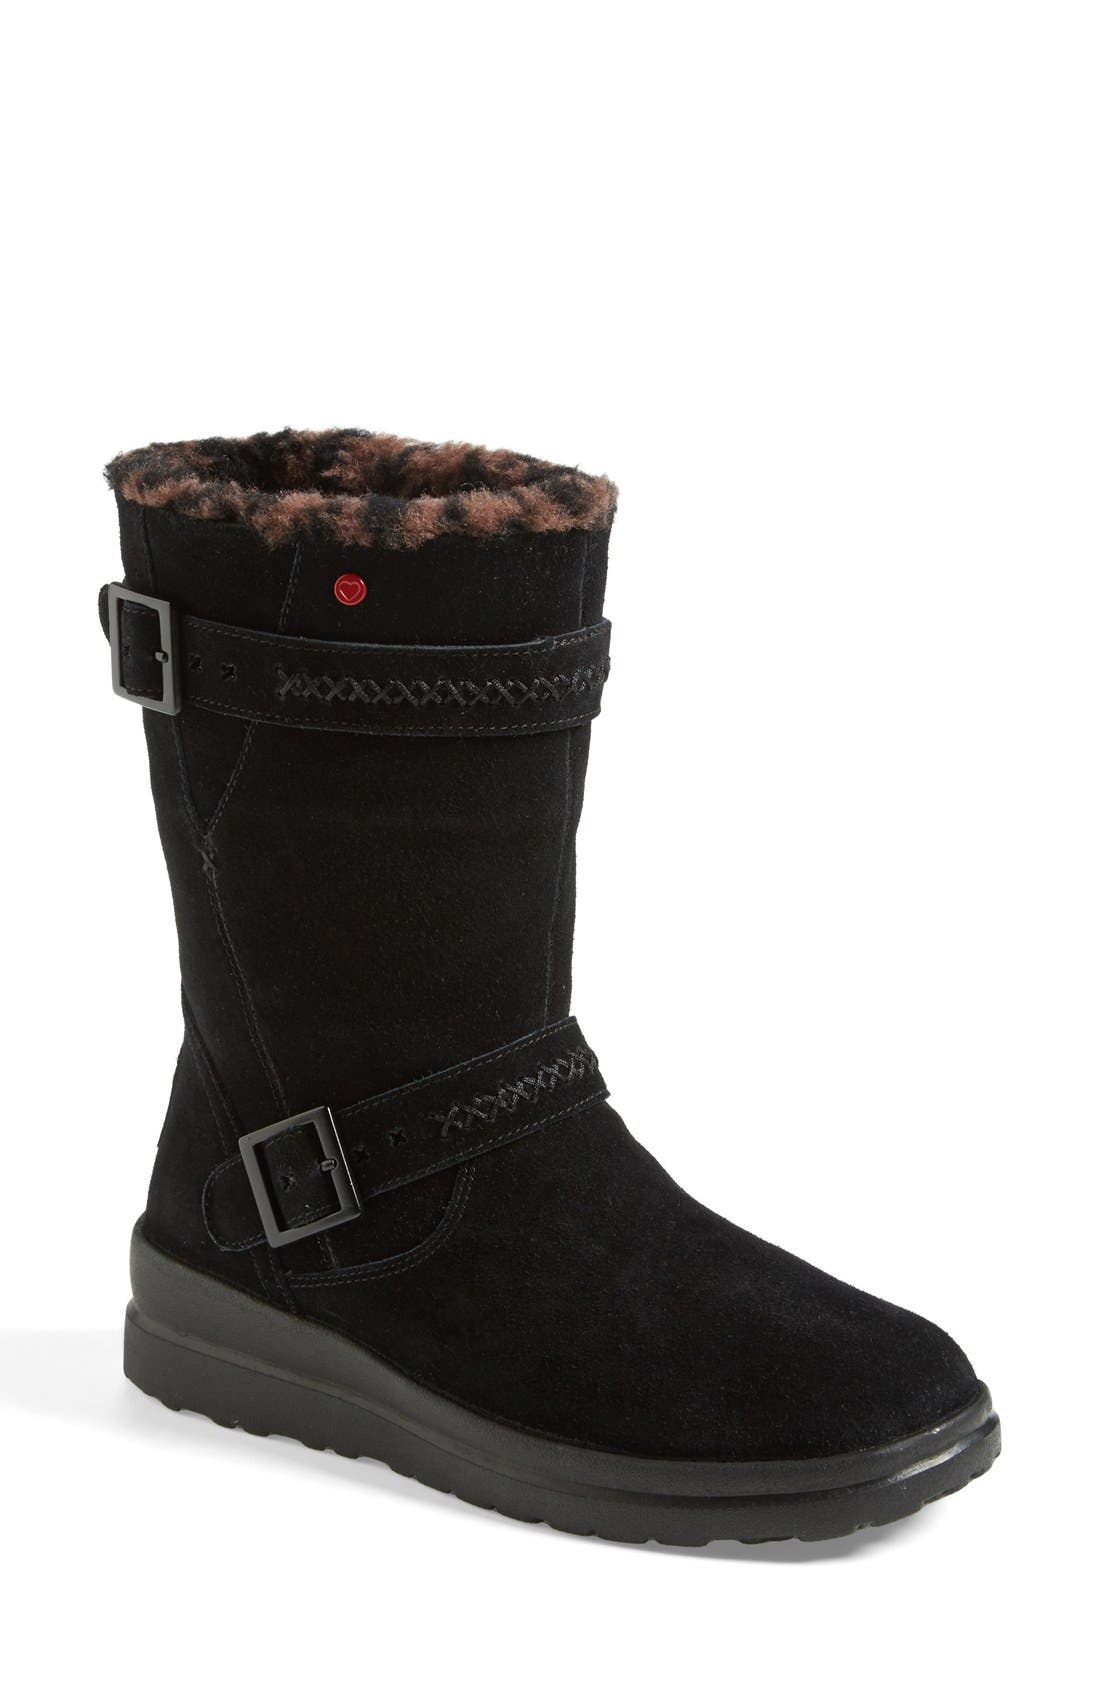 Alternate Image 1 Selected - I Heart UGG™ by UGG® Australia 'I Heart Moto' Boot